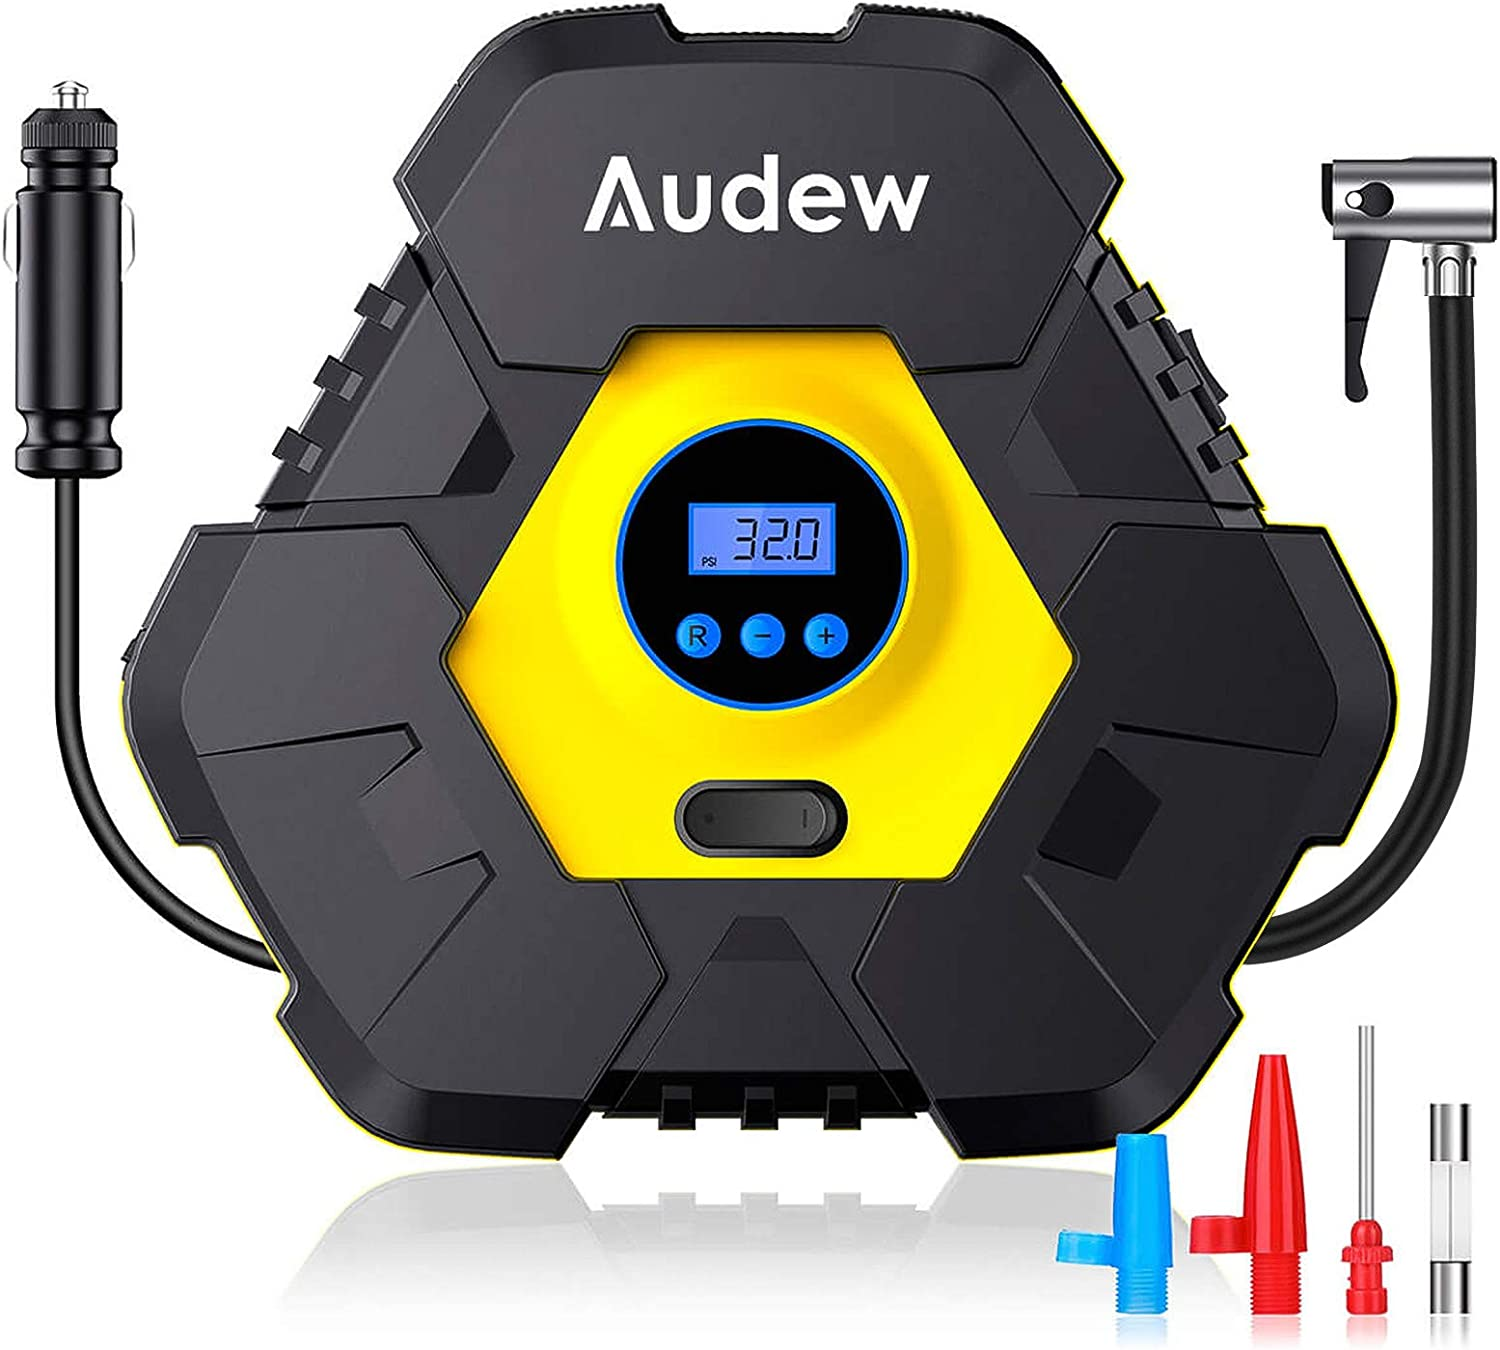 Motors and Air Beds Up to 38L//Min Air Flow for Car Audew Tyre Inflator Digital Tyre Pump 12V 150PSI Air Compressor Protable with LCD Display